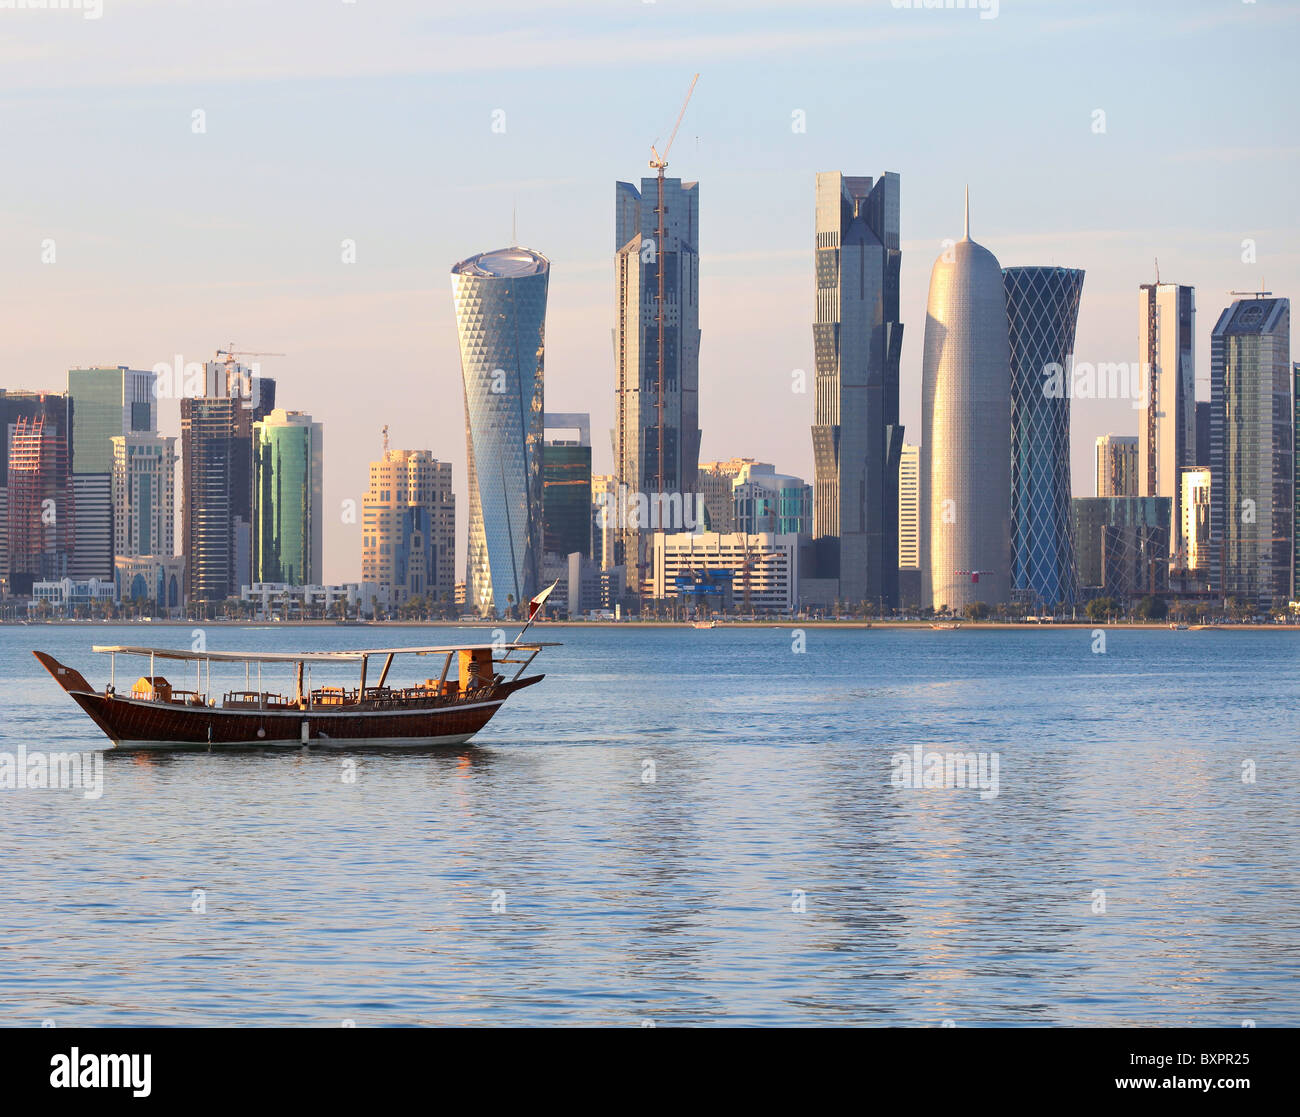 A dhow returns to harbour in Doha, Qatar, at sunset, with the city's modern skyline in the background. - Stock Image